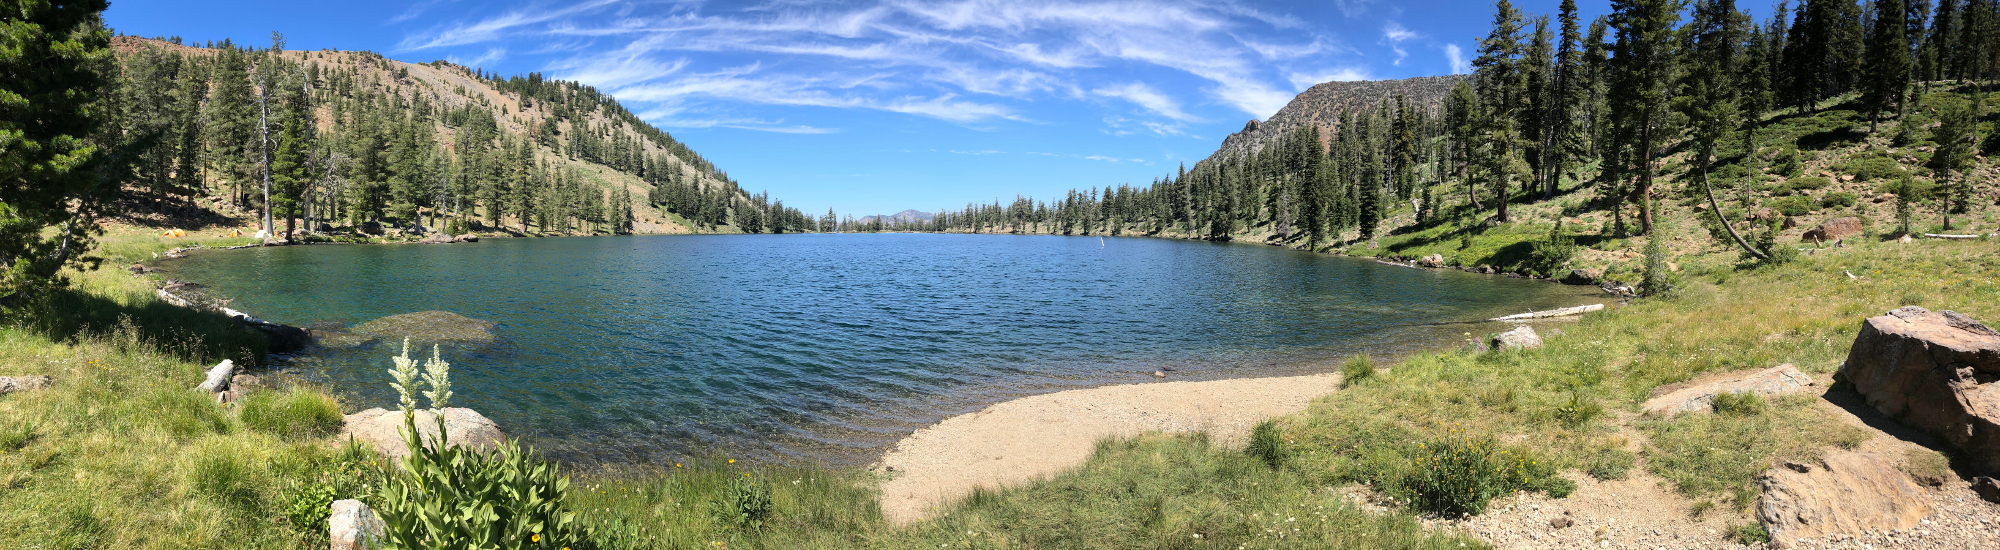 Deadfall Lake in Trinity Alps Wilderness